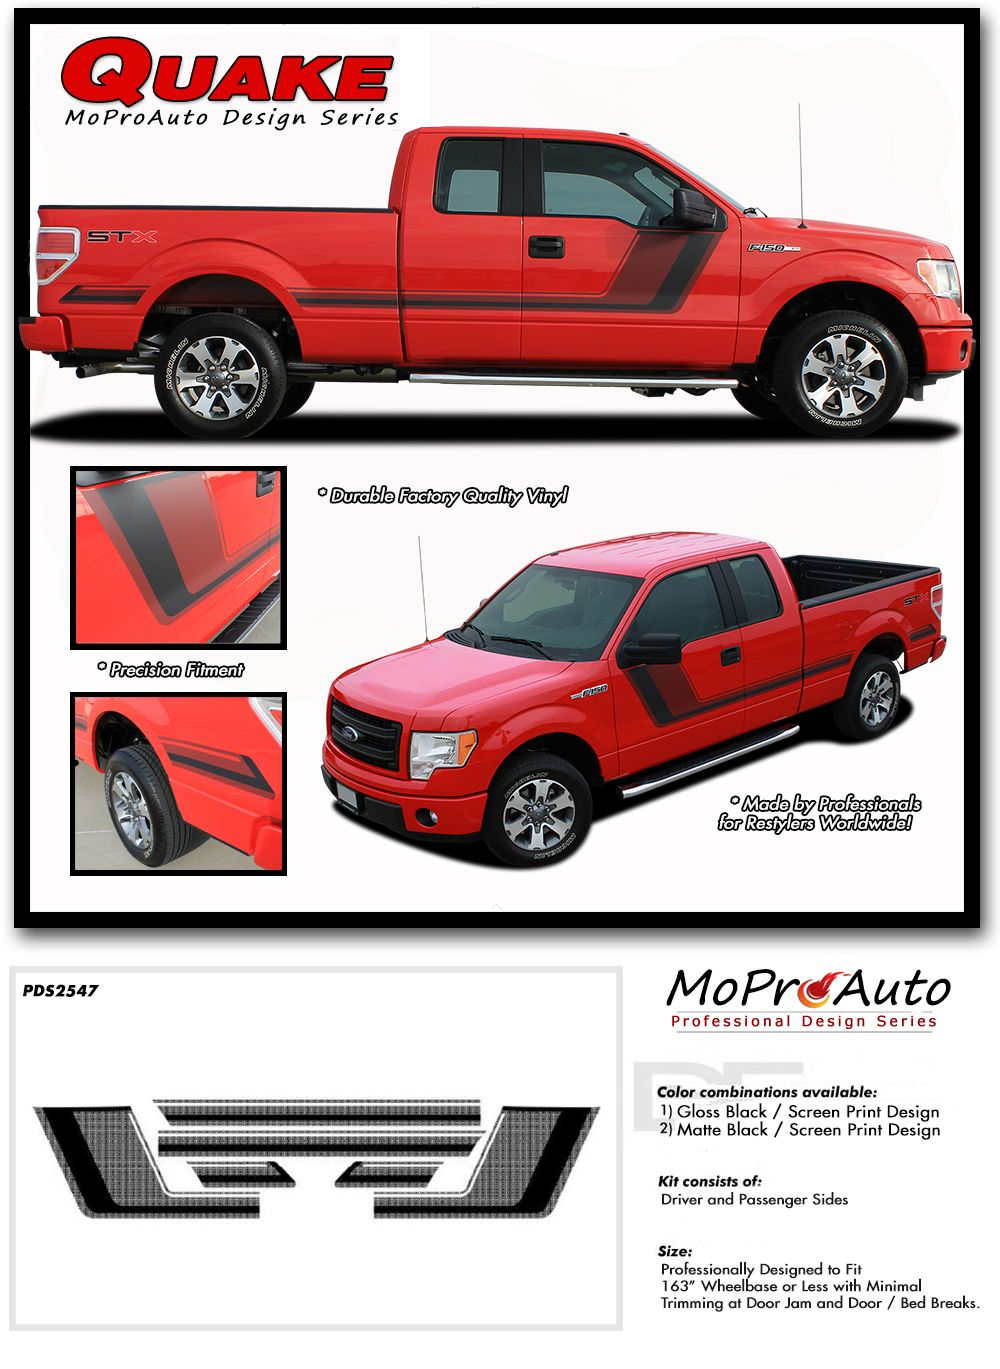 TREMOR FX APPEARANCE STYLE FORD FSERIES F MoProAuto Pro - Custom decal graphics on vehiclesgetlaunched custom designed vinyl graphics decals turn heads and